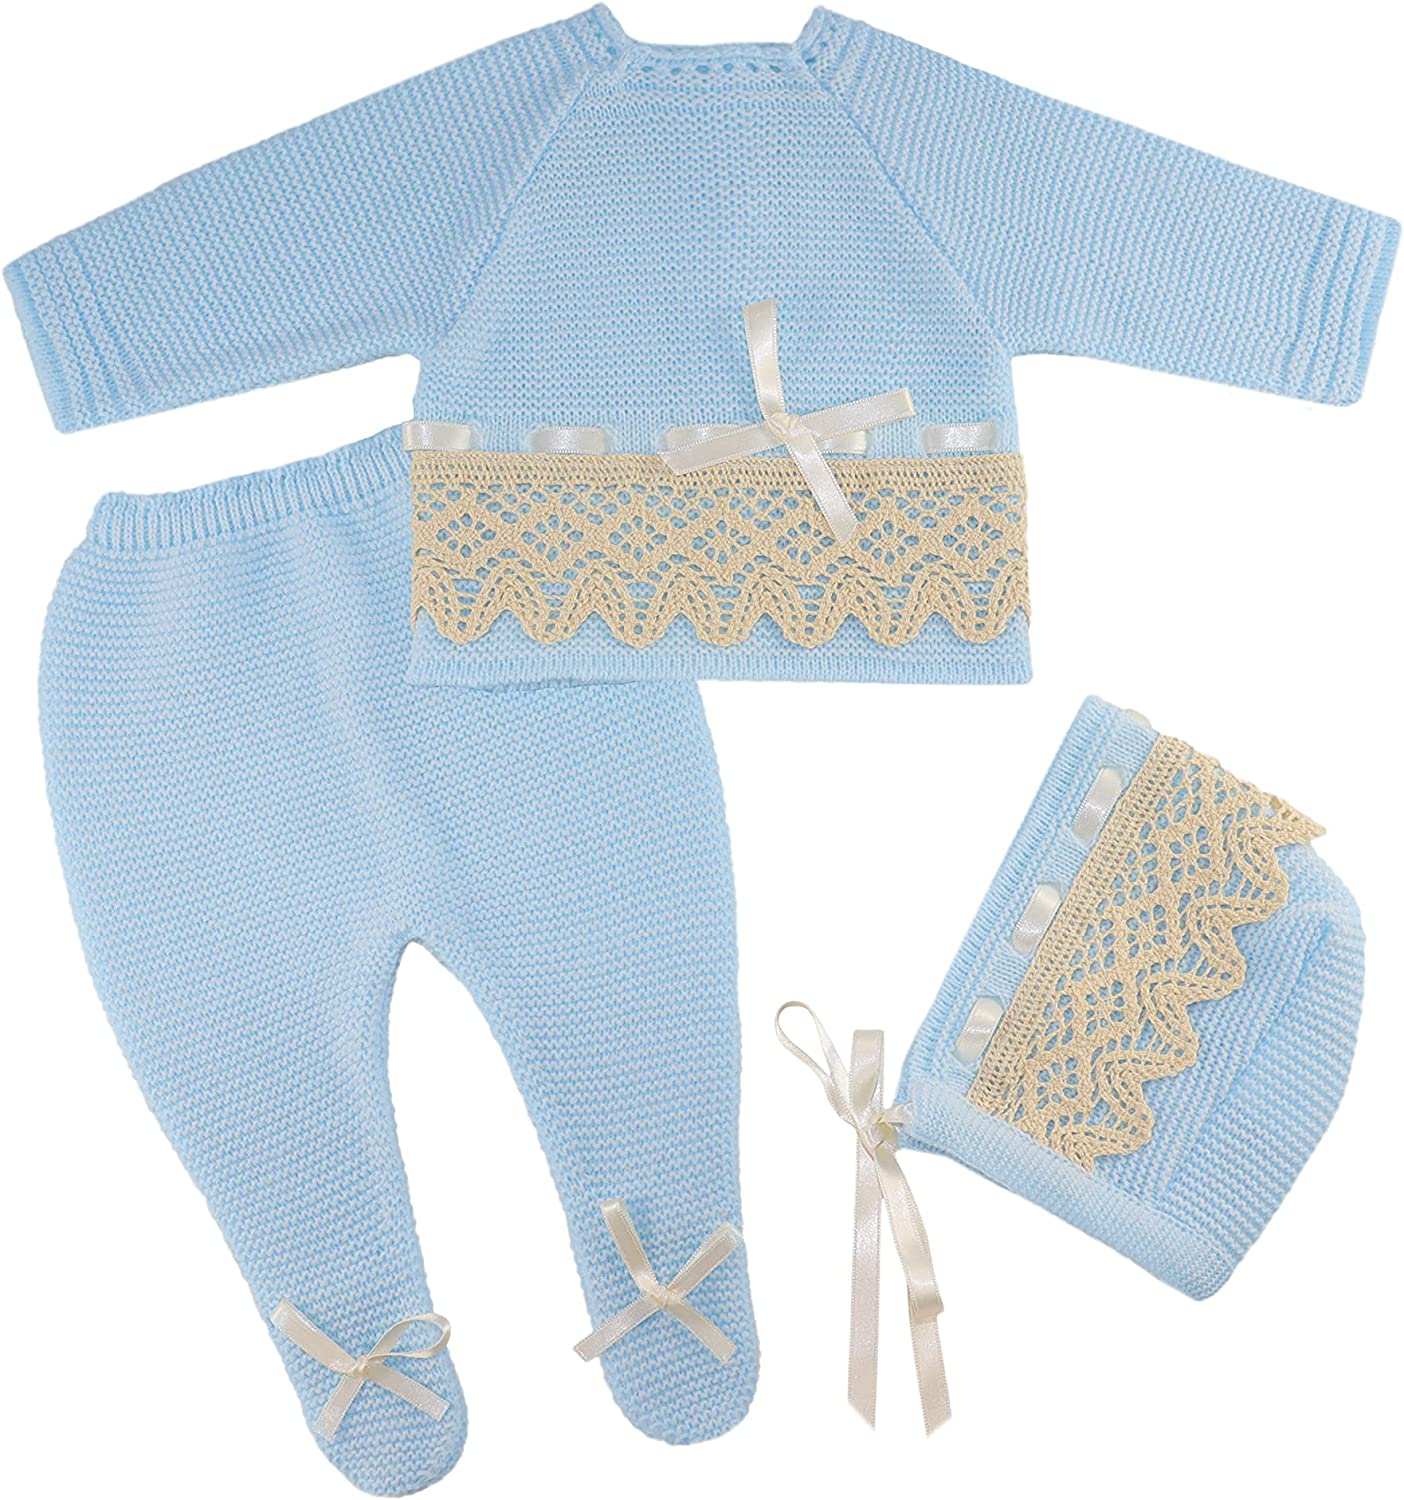 Escalett Layette Newborn Baby Knitted Clothes Set, Coming Home or Any Occasion Knit Outfit